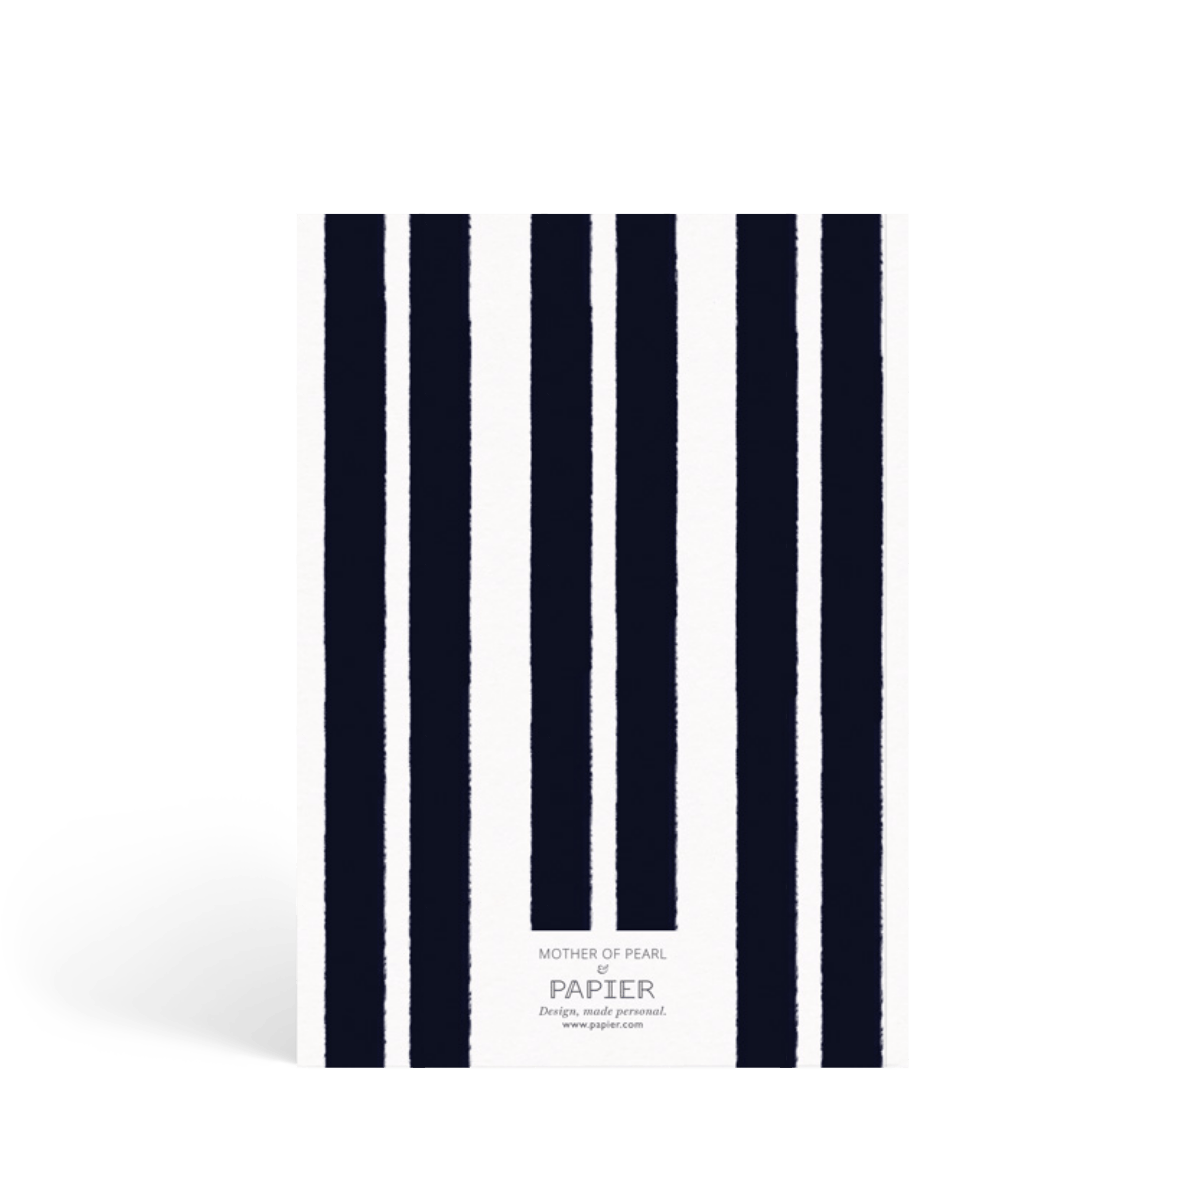 Https%3a%2f%2fwww.papier.com%2fproduct image%2f55004%2f5%2fnavy paint stripe 13218 back 1542299066.png?ixlib=rb 1.1